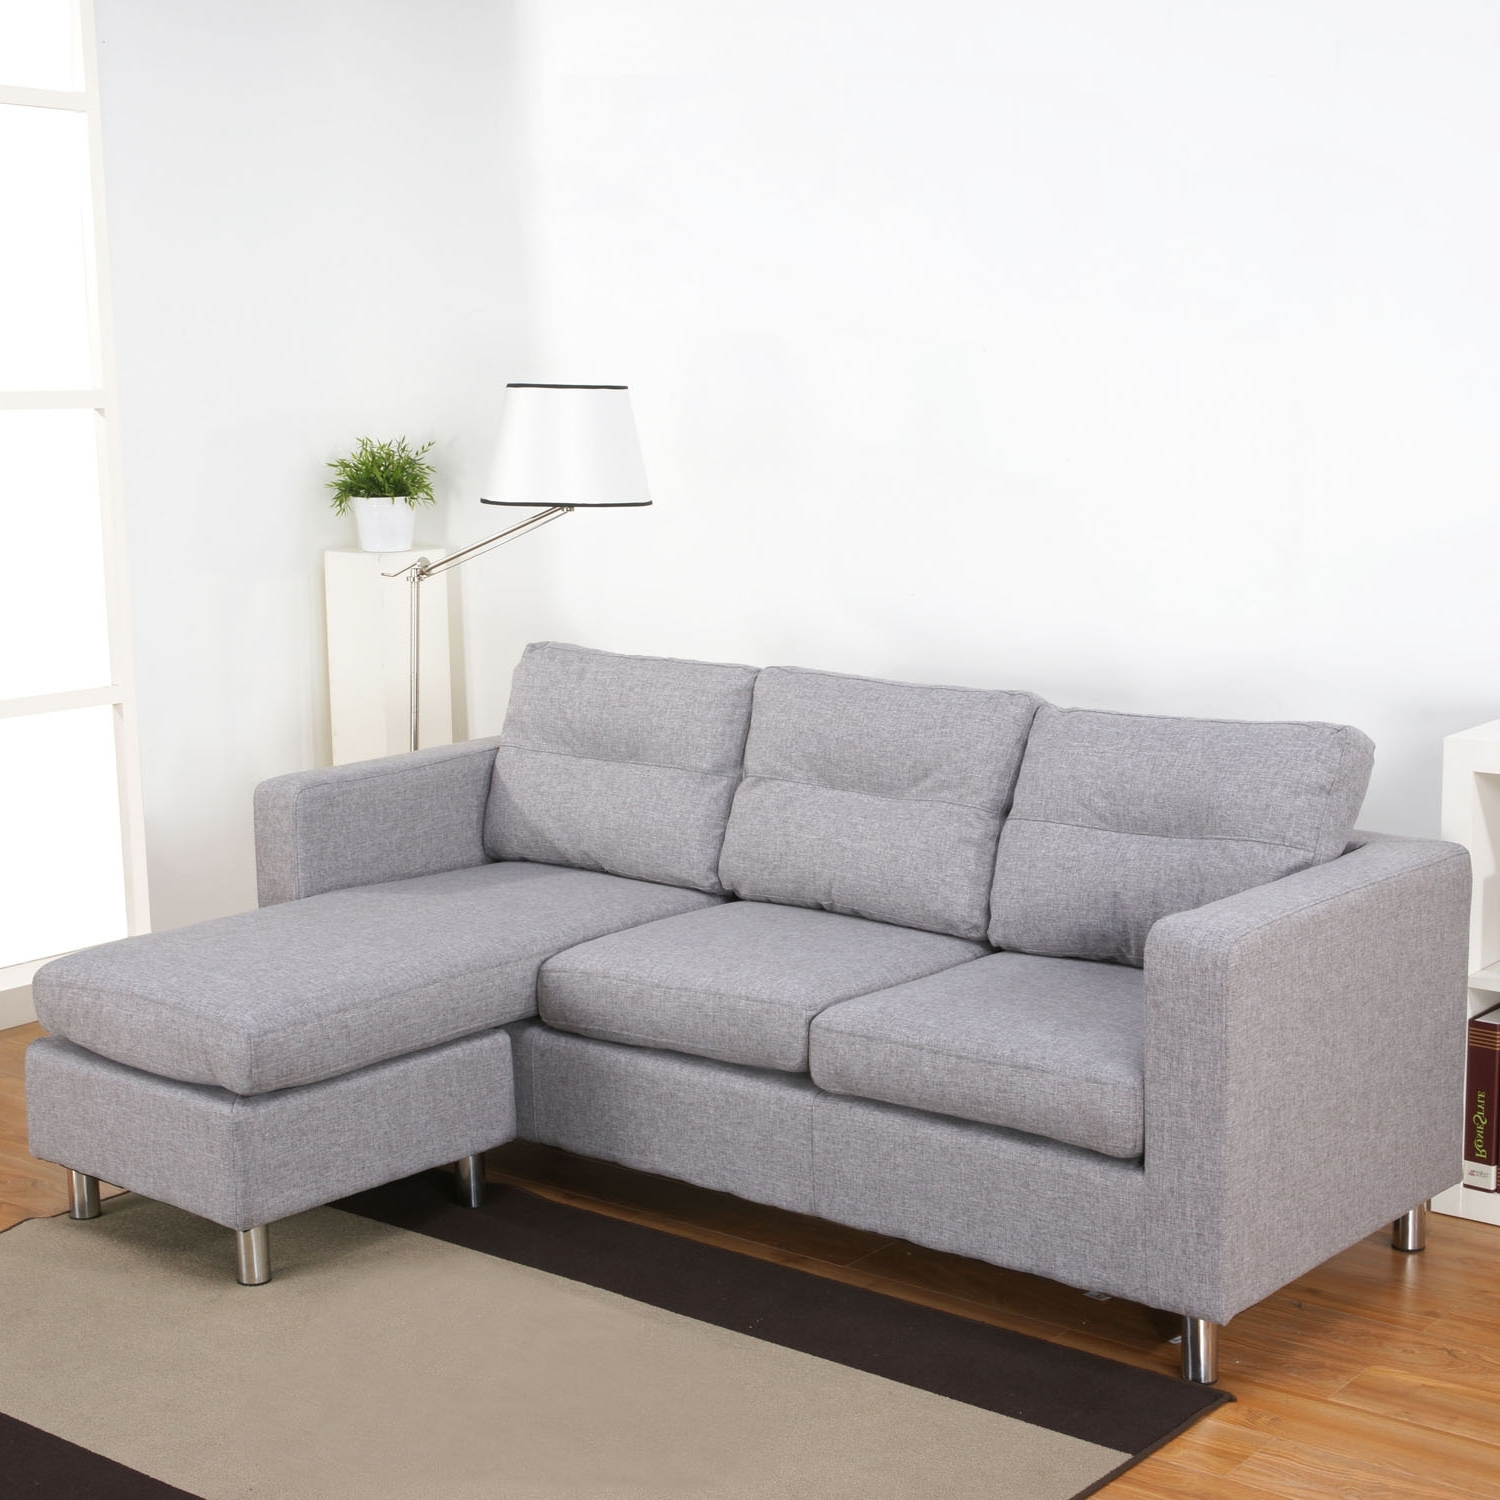 Gray Sectional Sofas With Chaise (View 4 of 15)